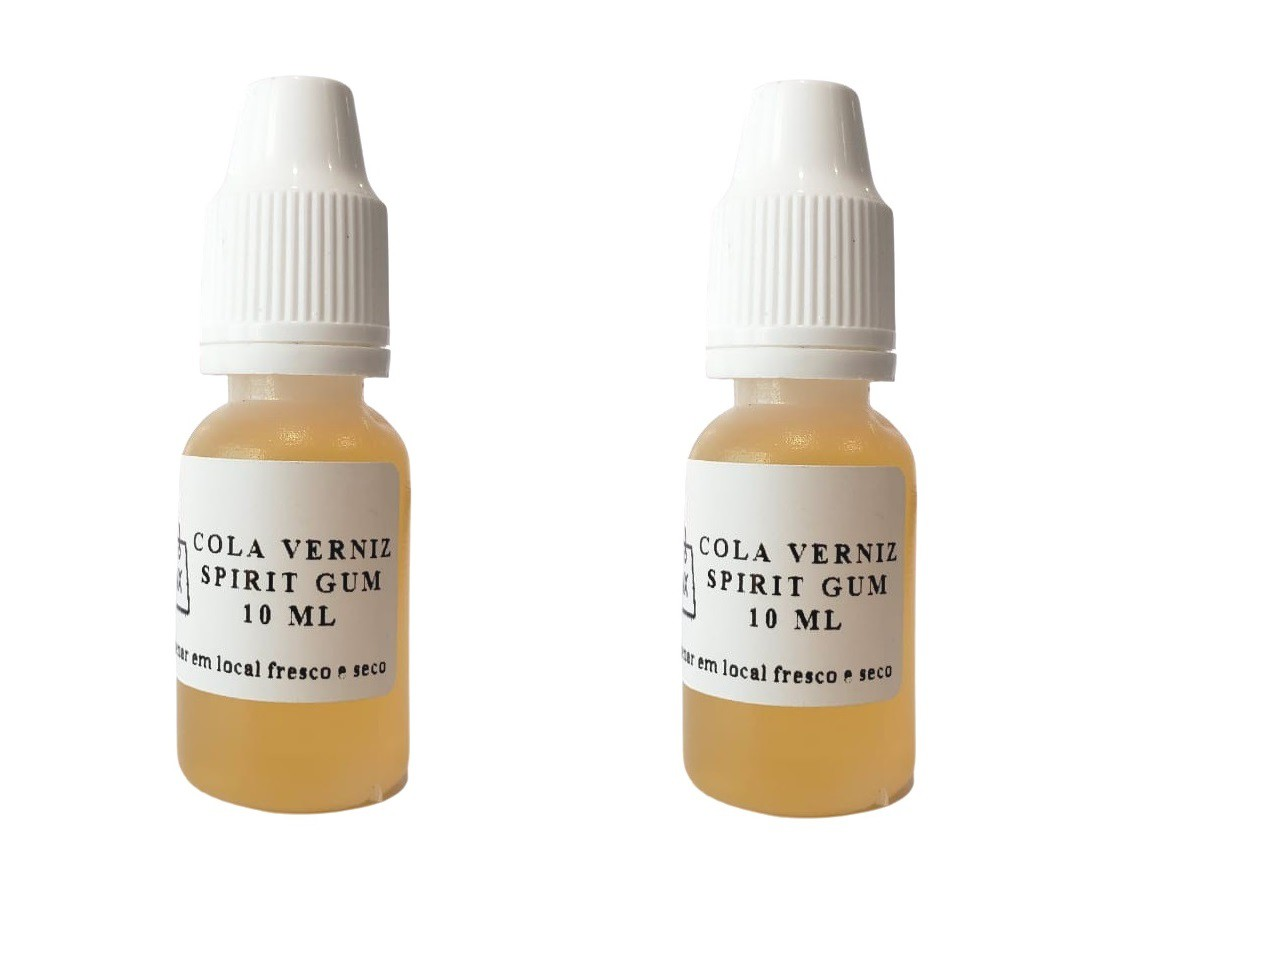 Kit 2 Colas Spirit Gum verniz 10ml p/ laces e perucas